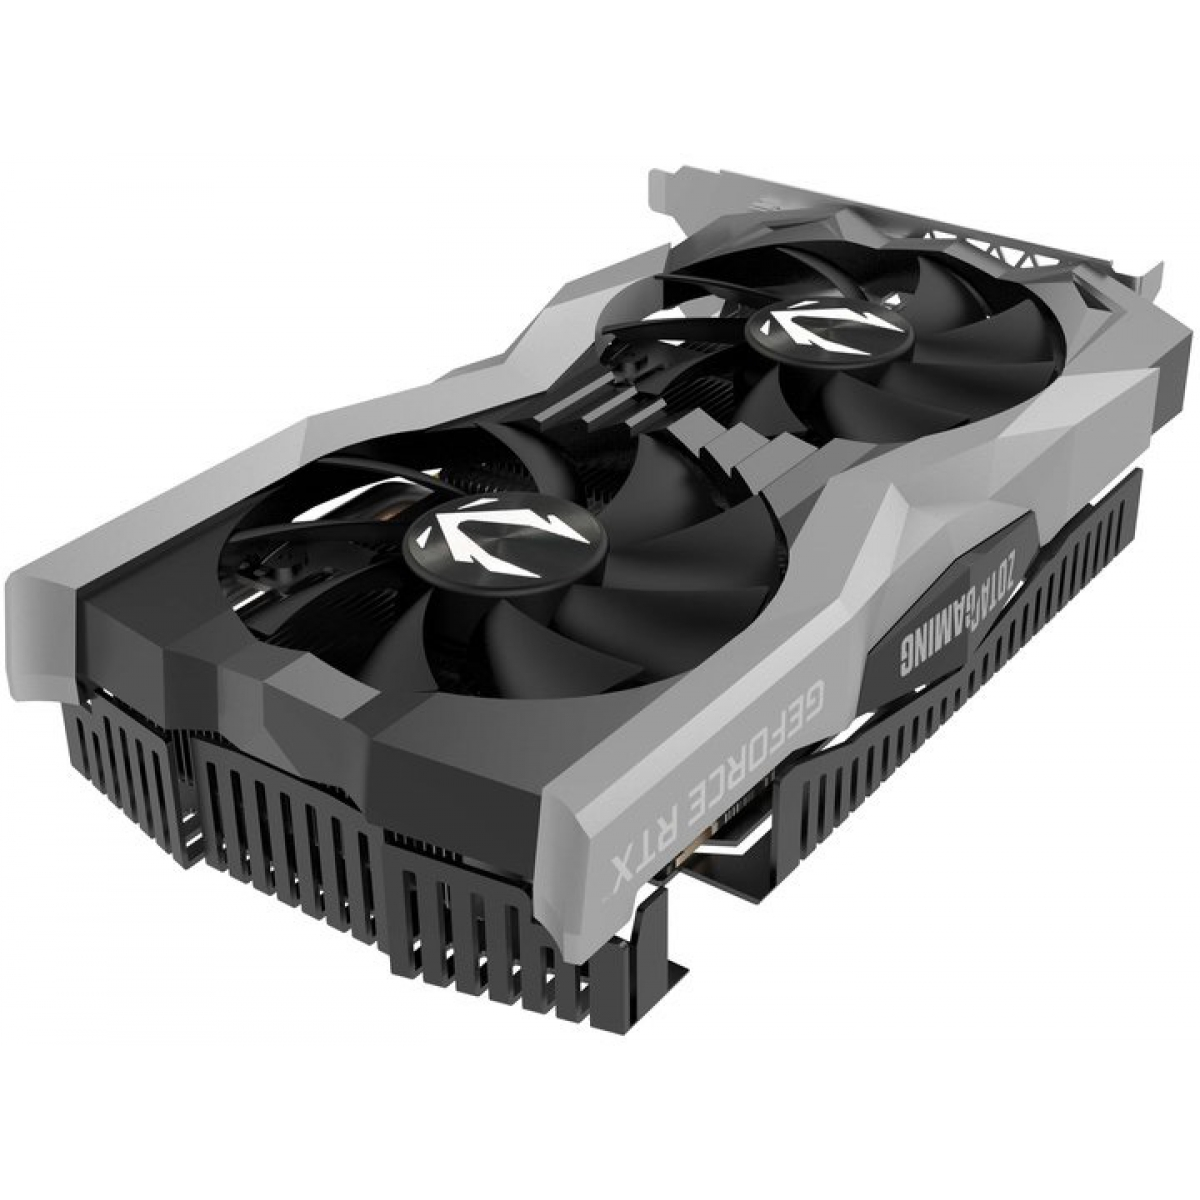 Placa de Vídeo Zotac GeForce RTX 2060 Gaming Twin Fan, 6GB GDDR6, 192Bit